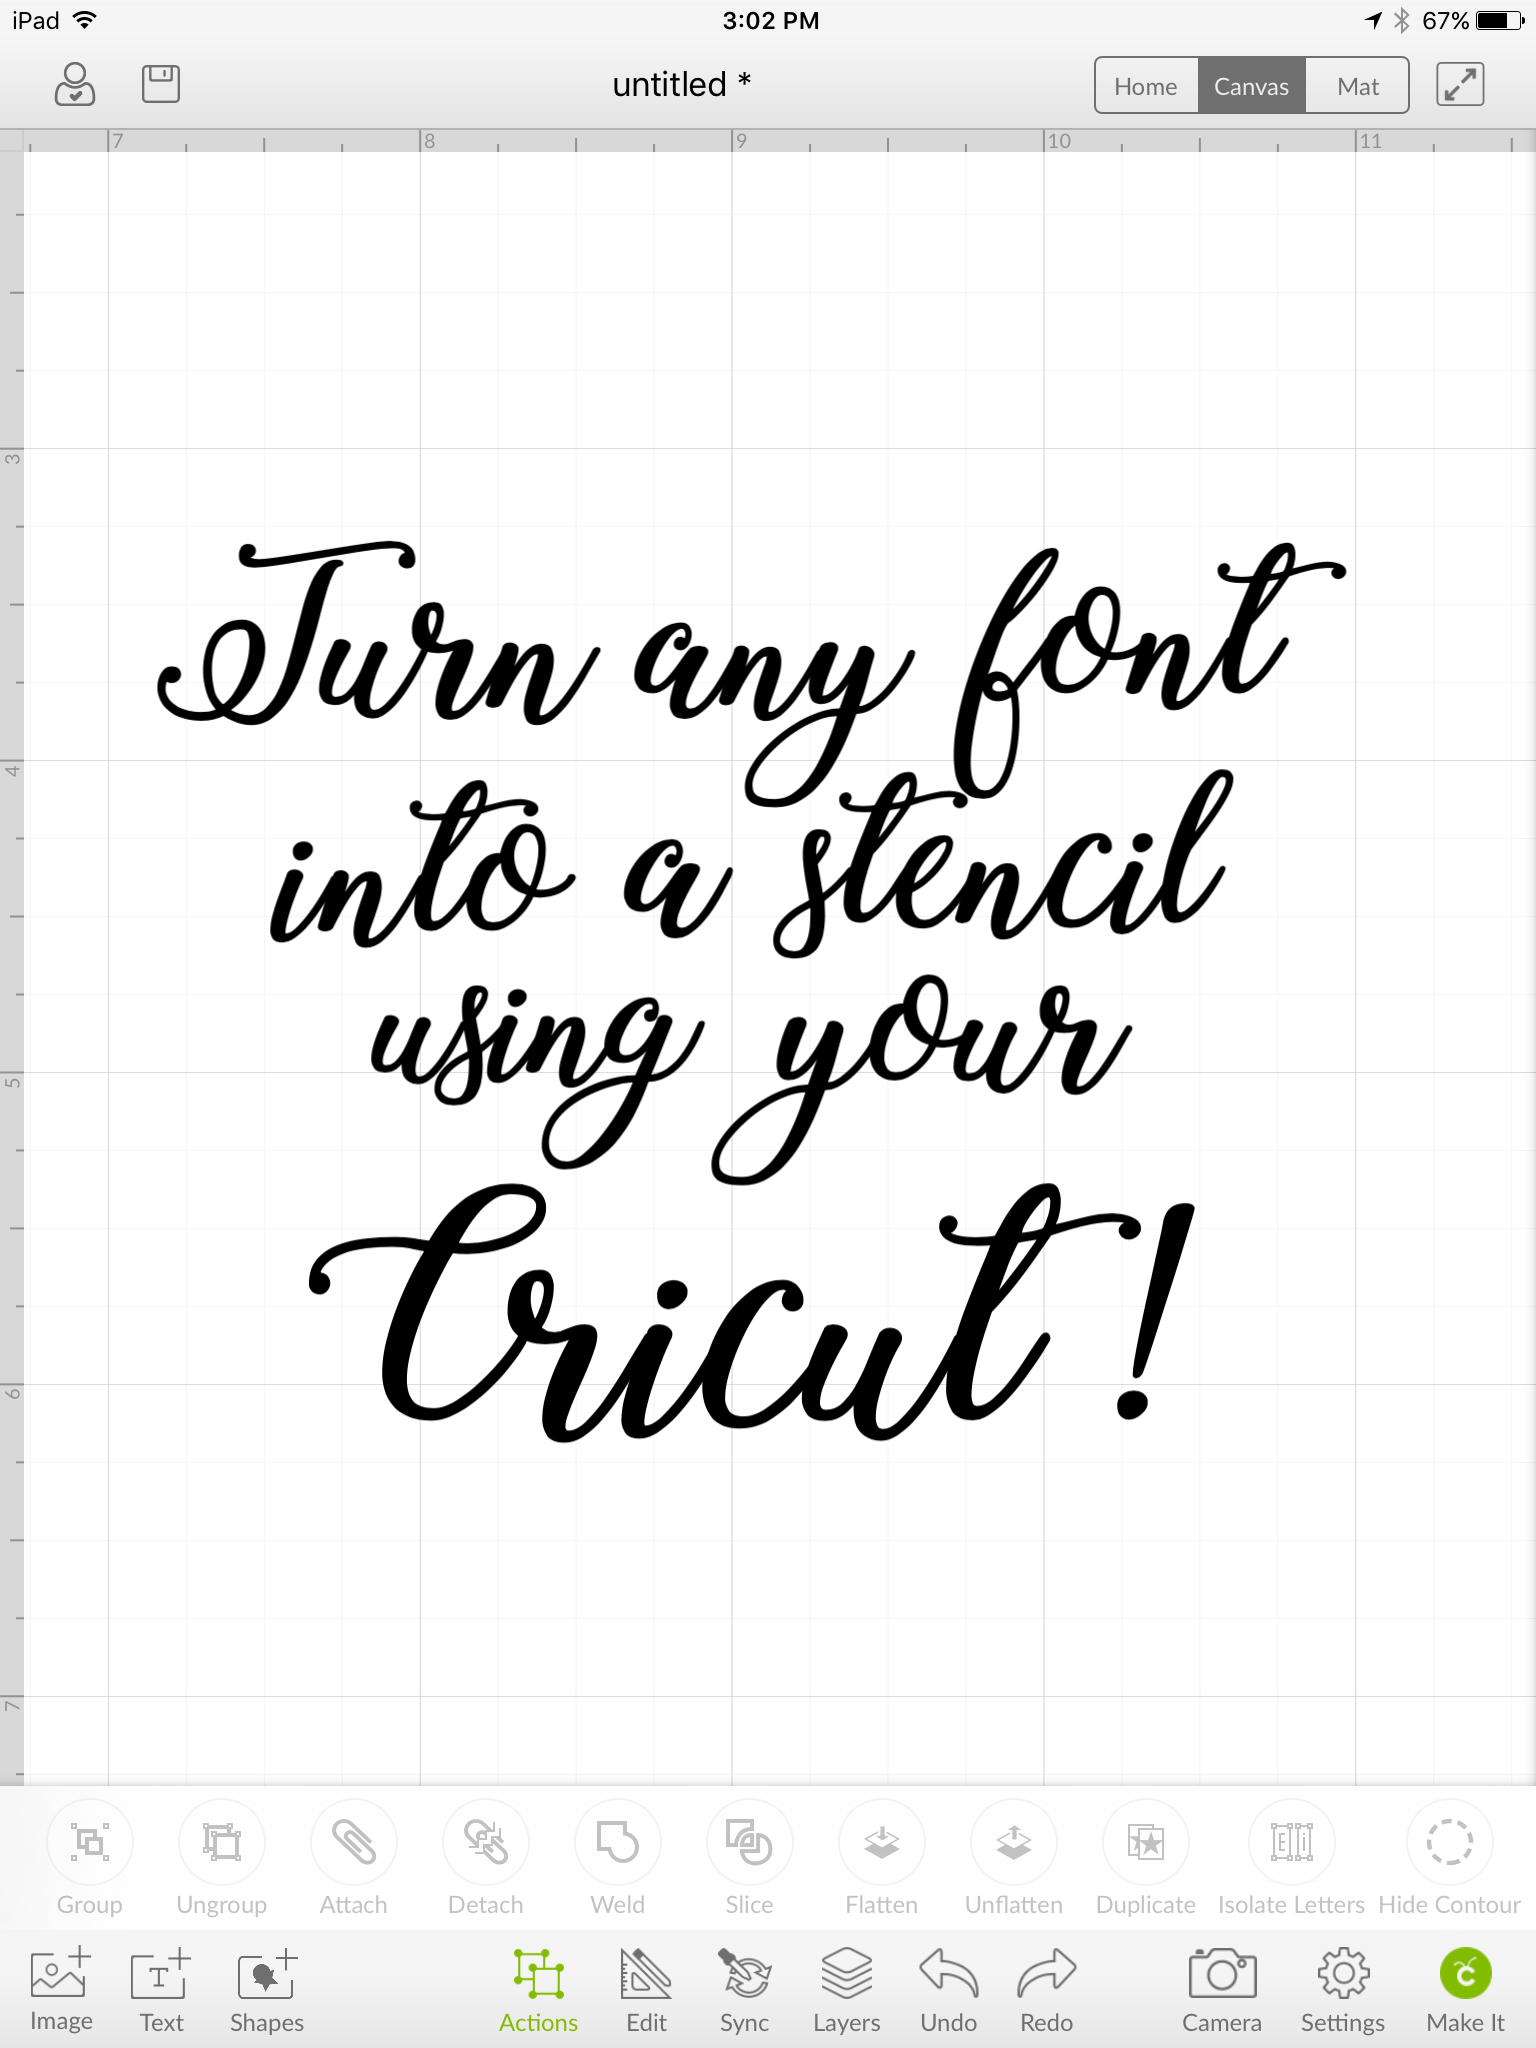 Creating a stencil from any font on cricut design space.